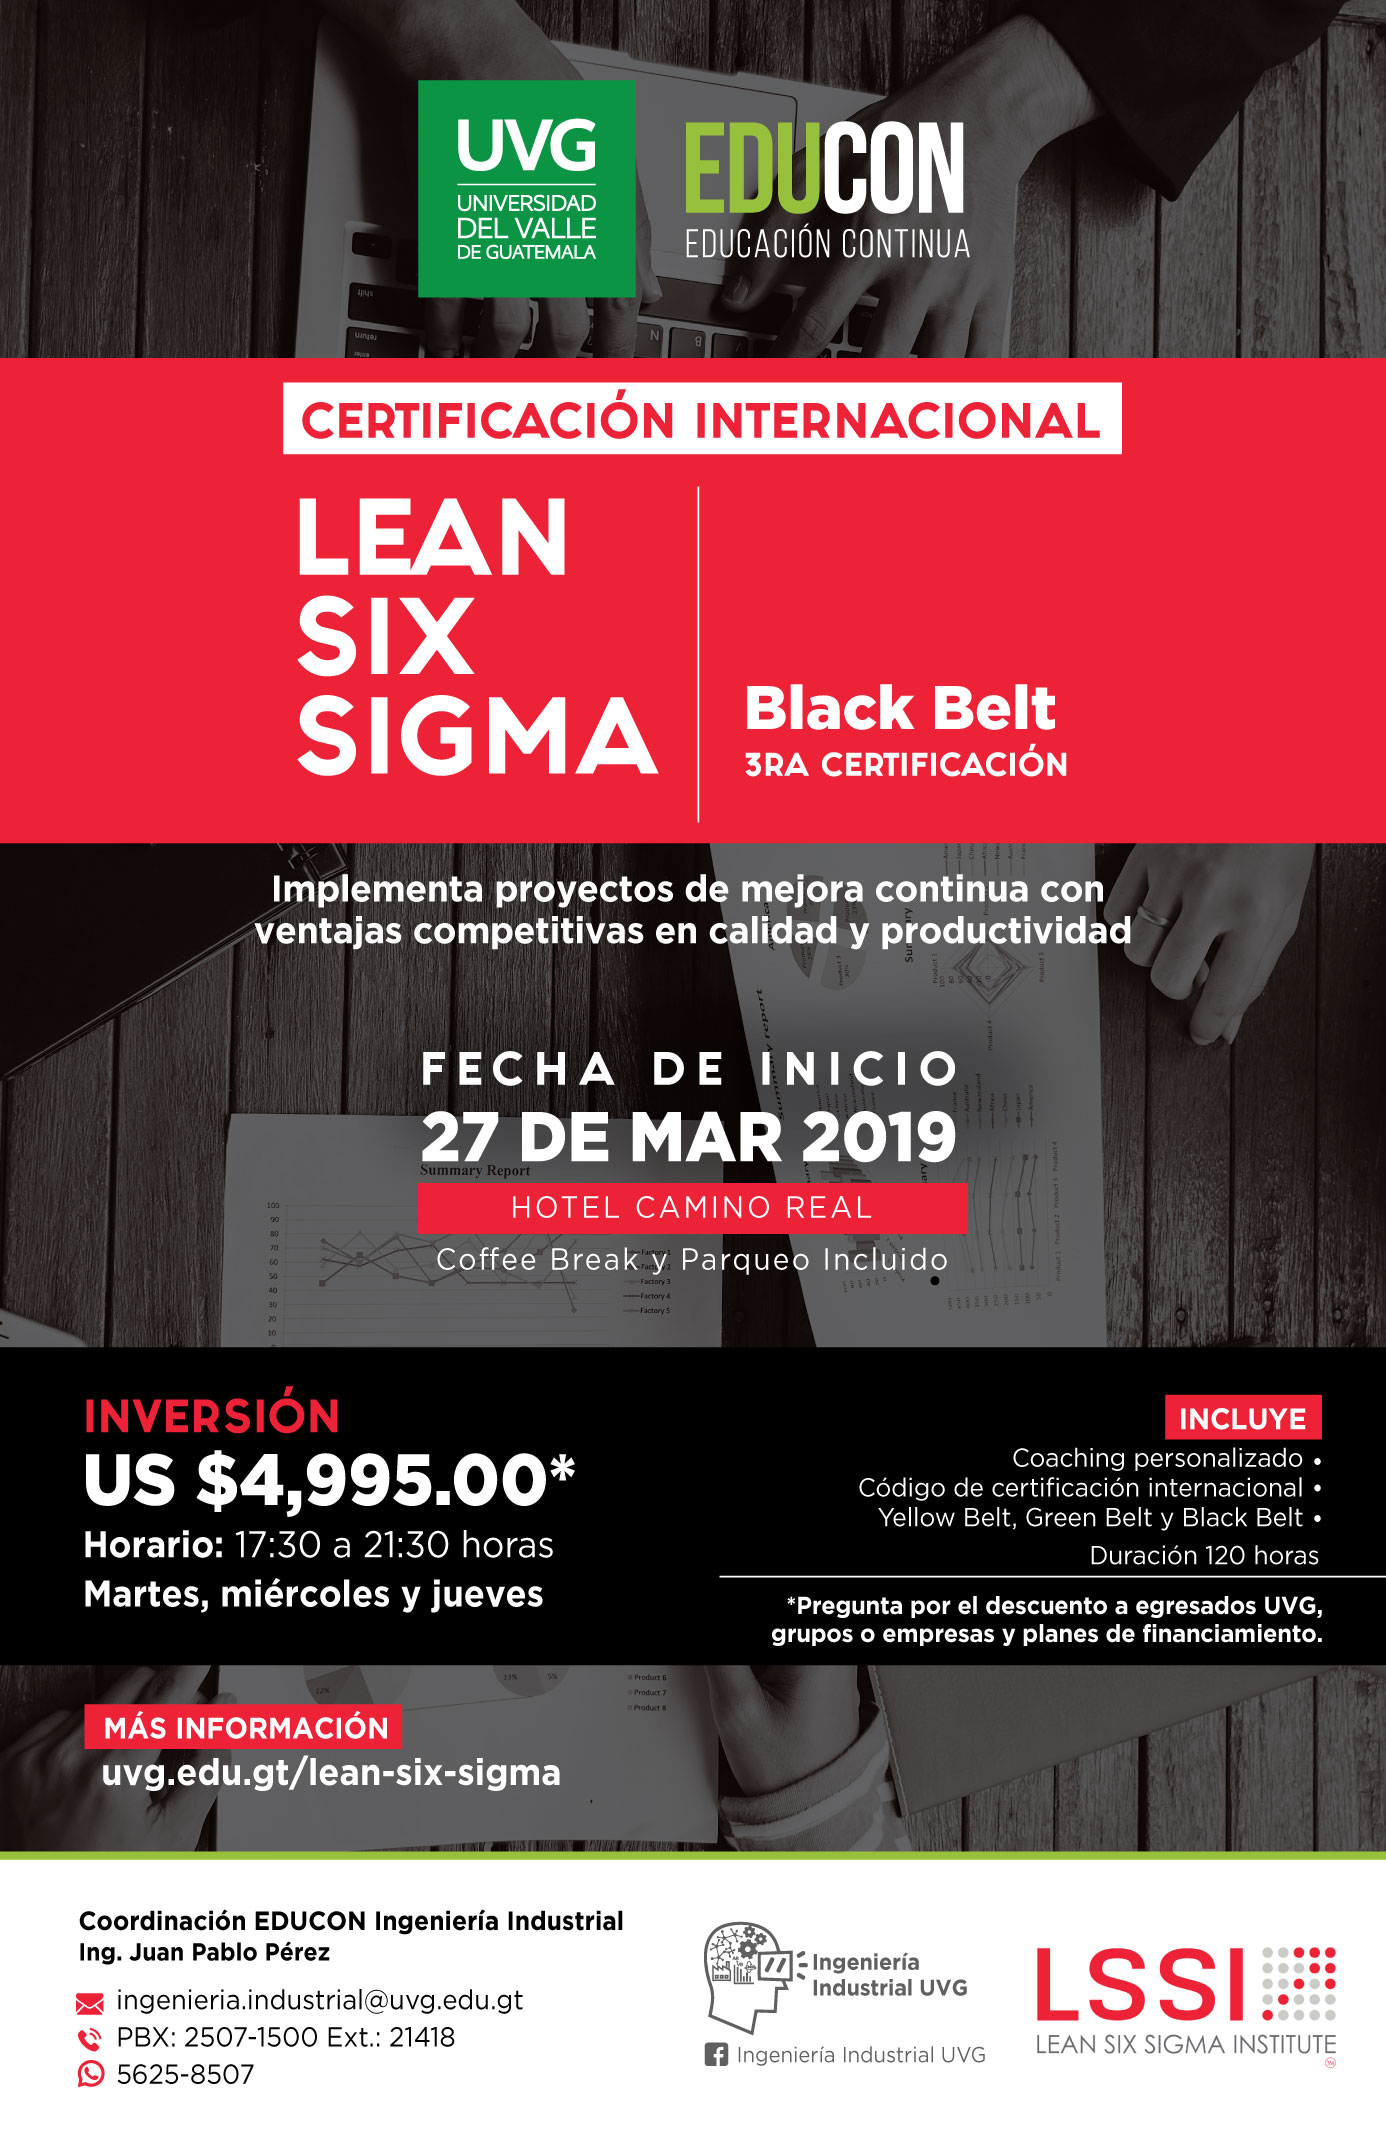 Certificación Internacional Lean Six Sigma(Black Belt)